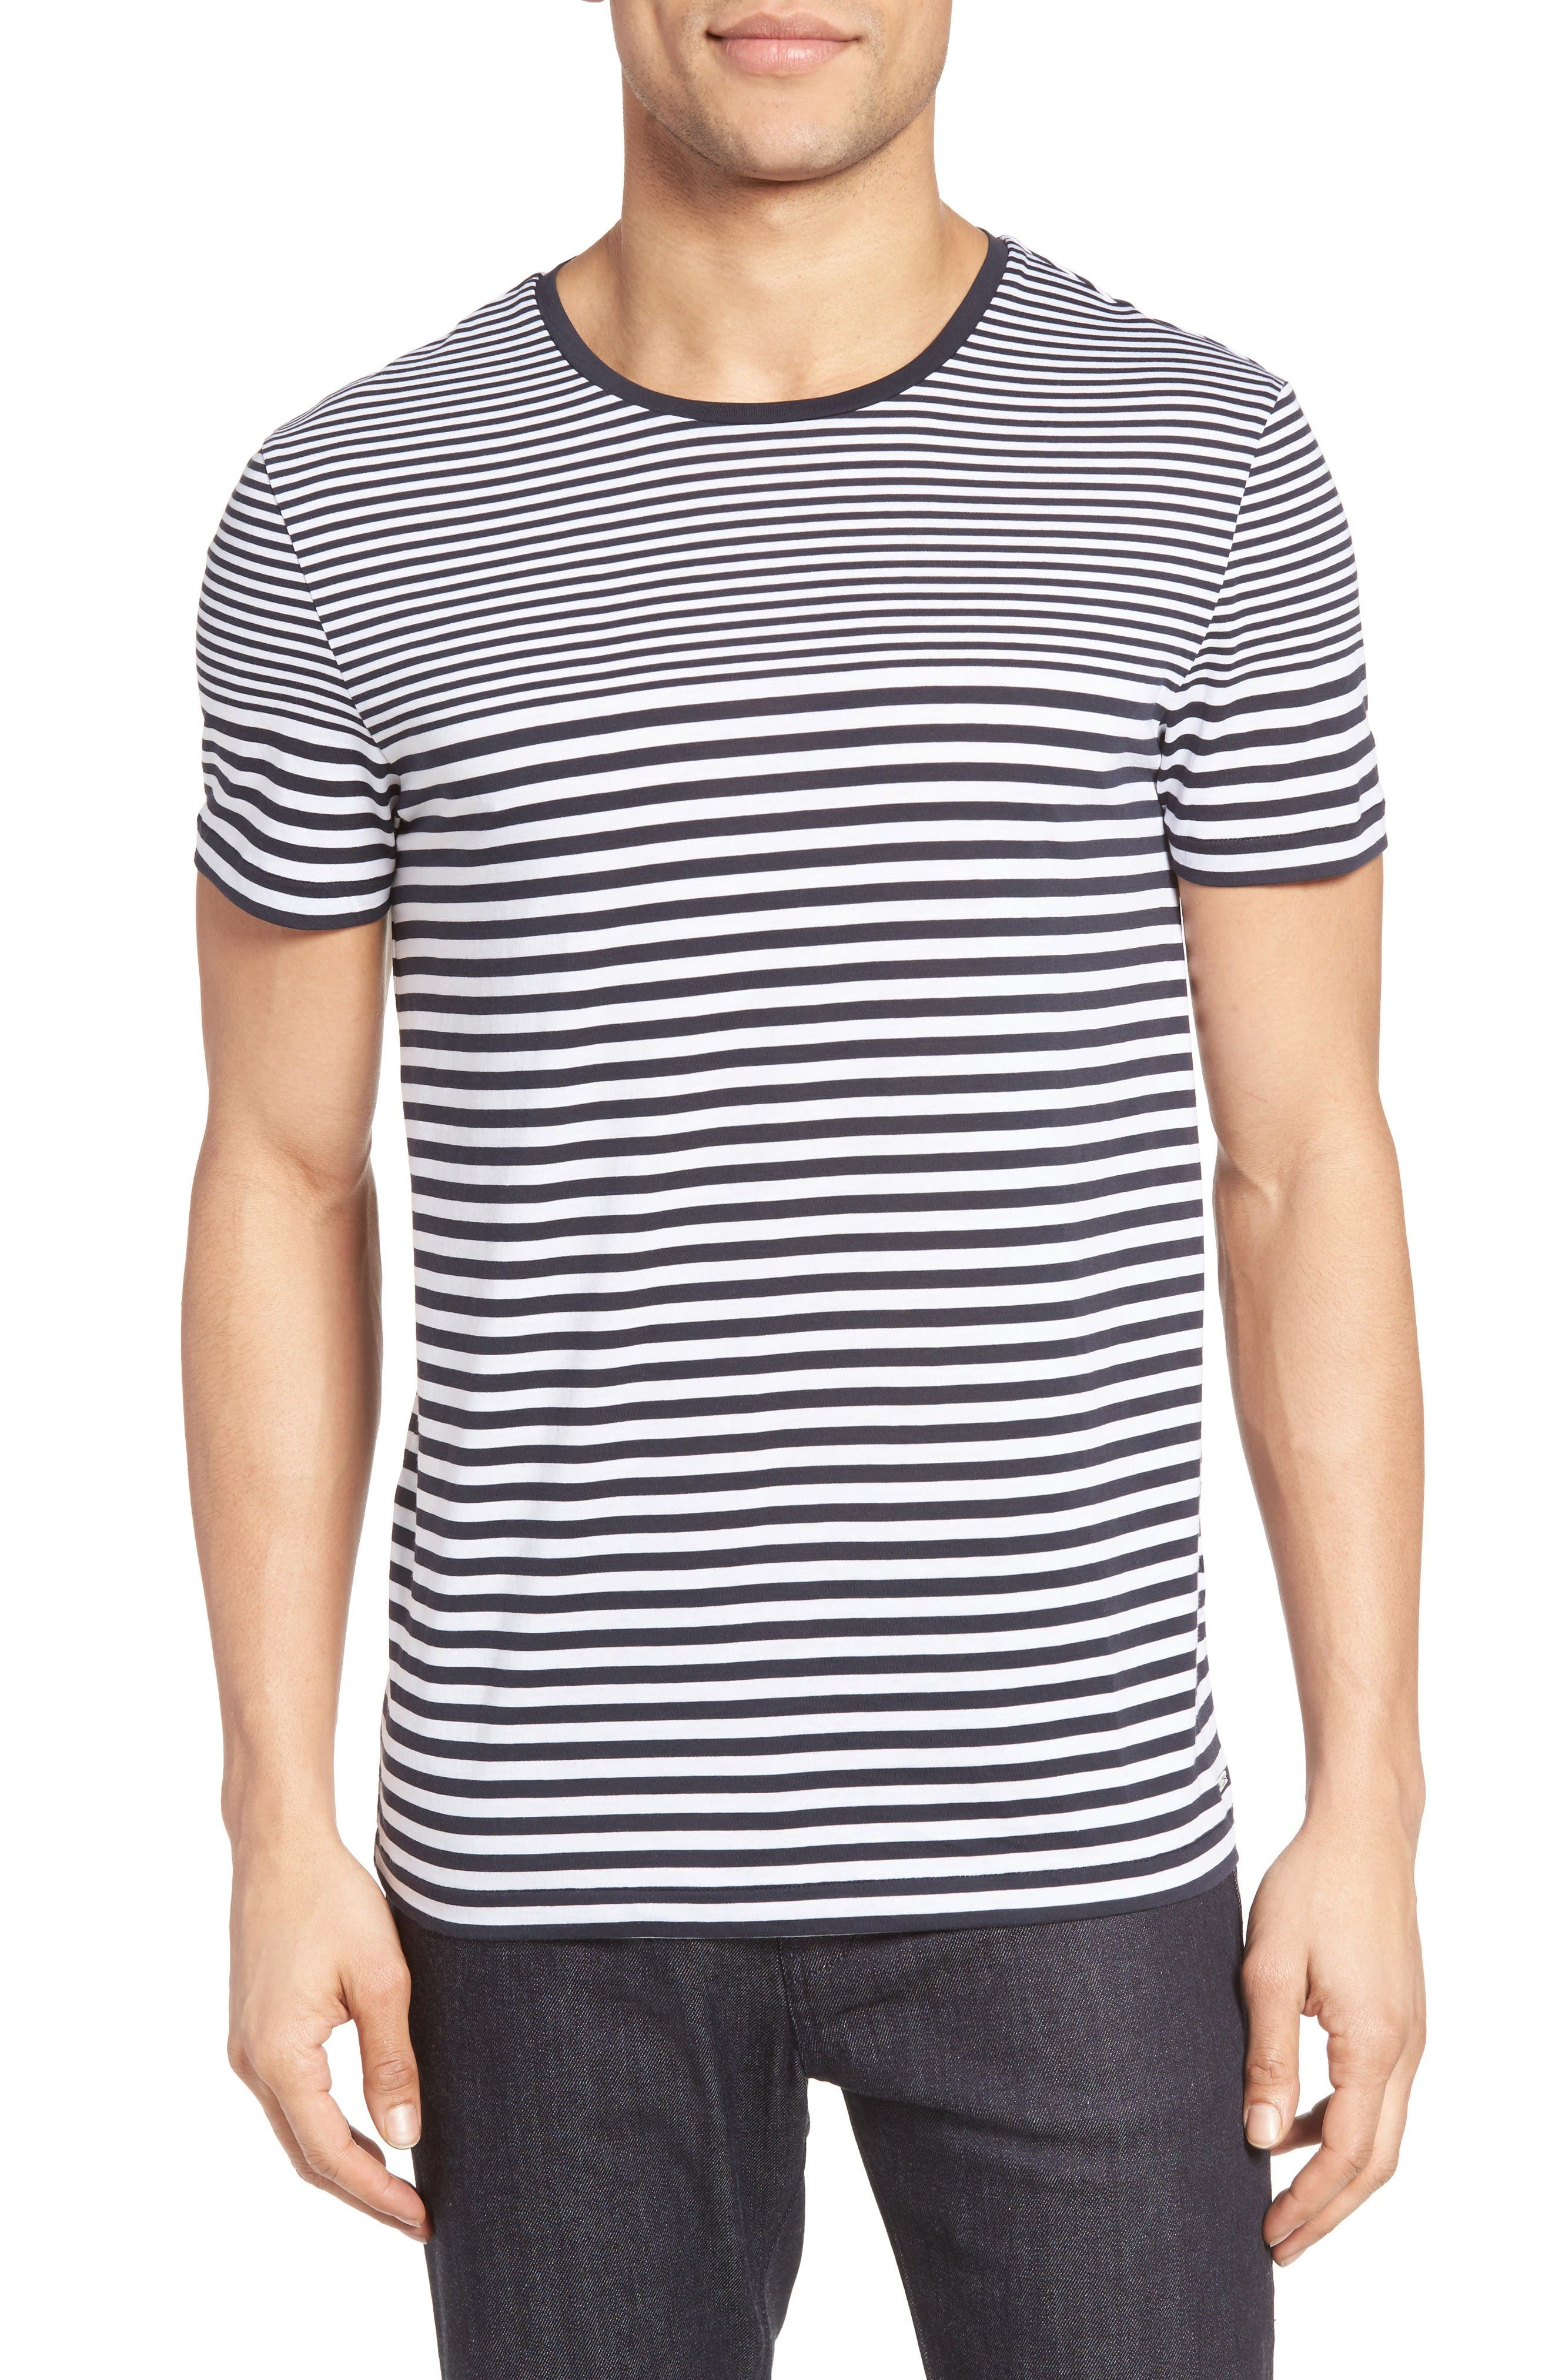 Tessler Slim Fit Stripe T-Shirt,                         Main,                         color, Navy